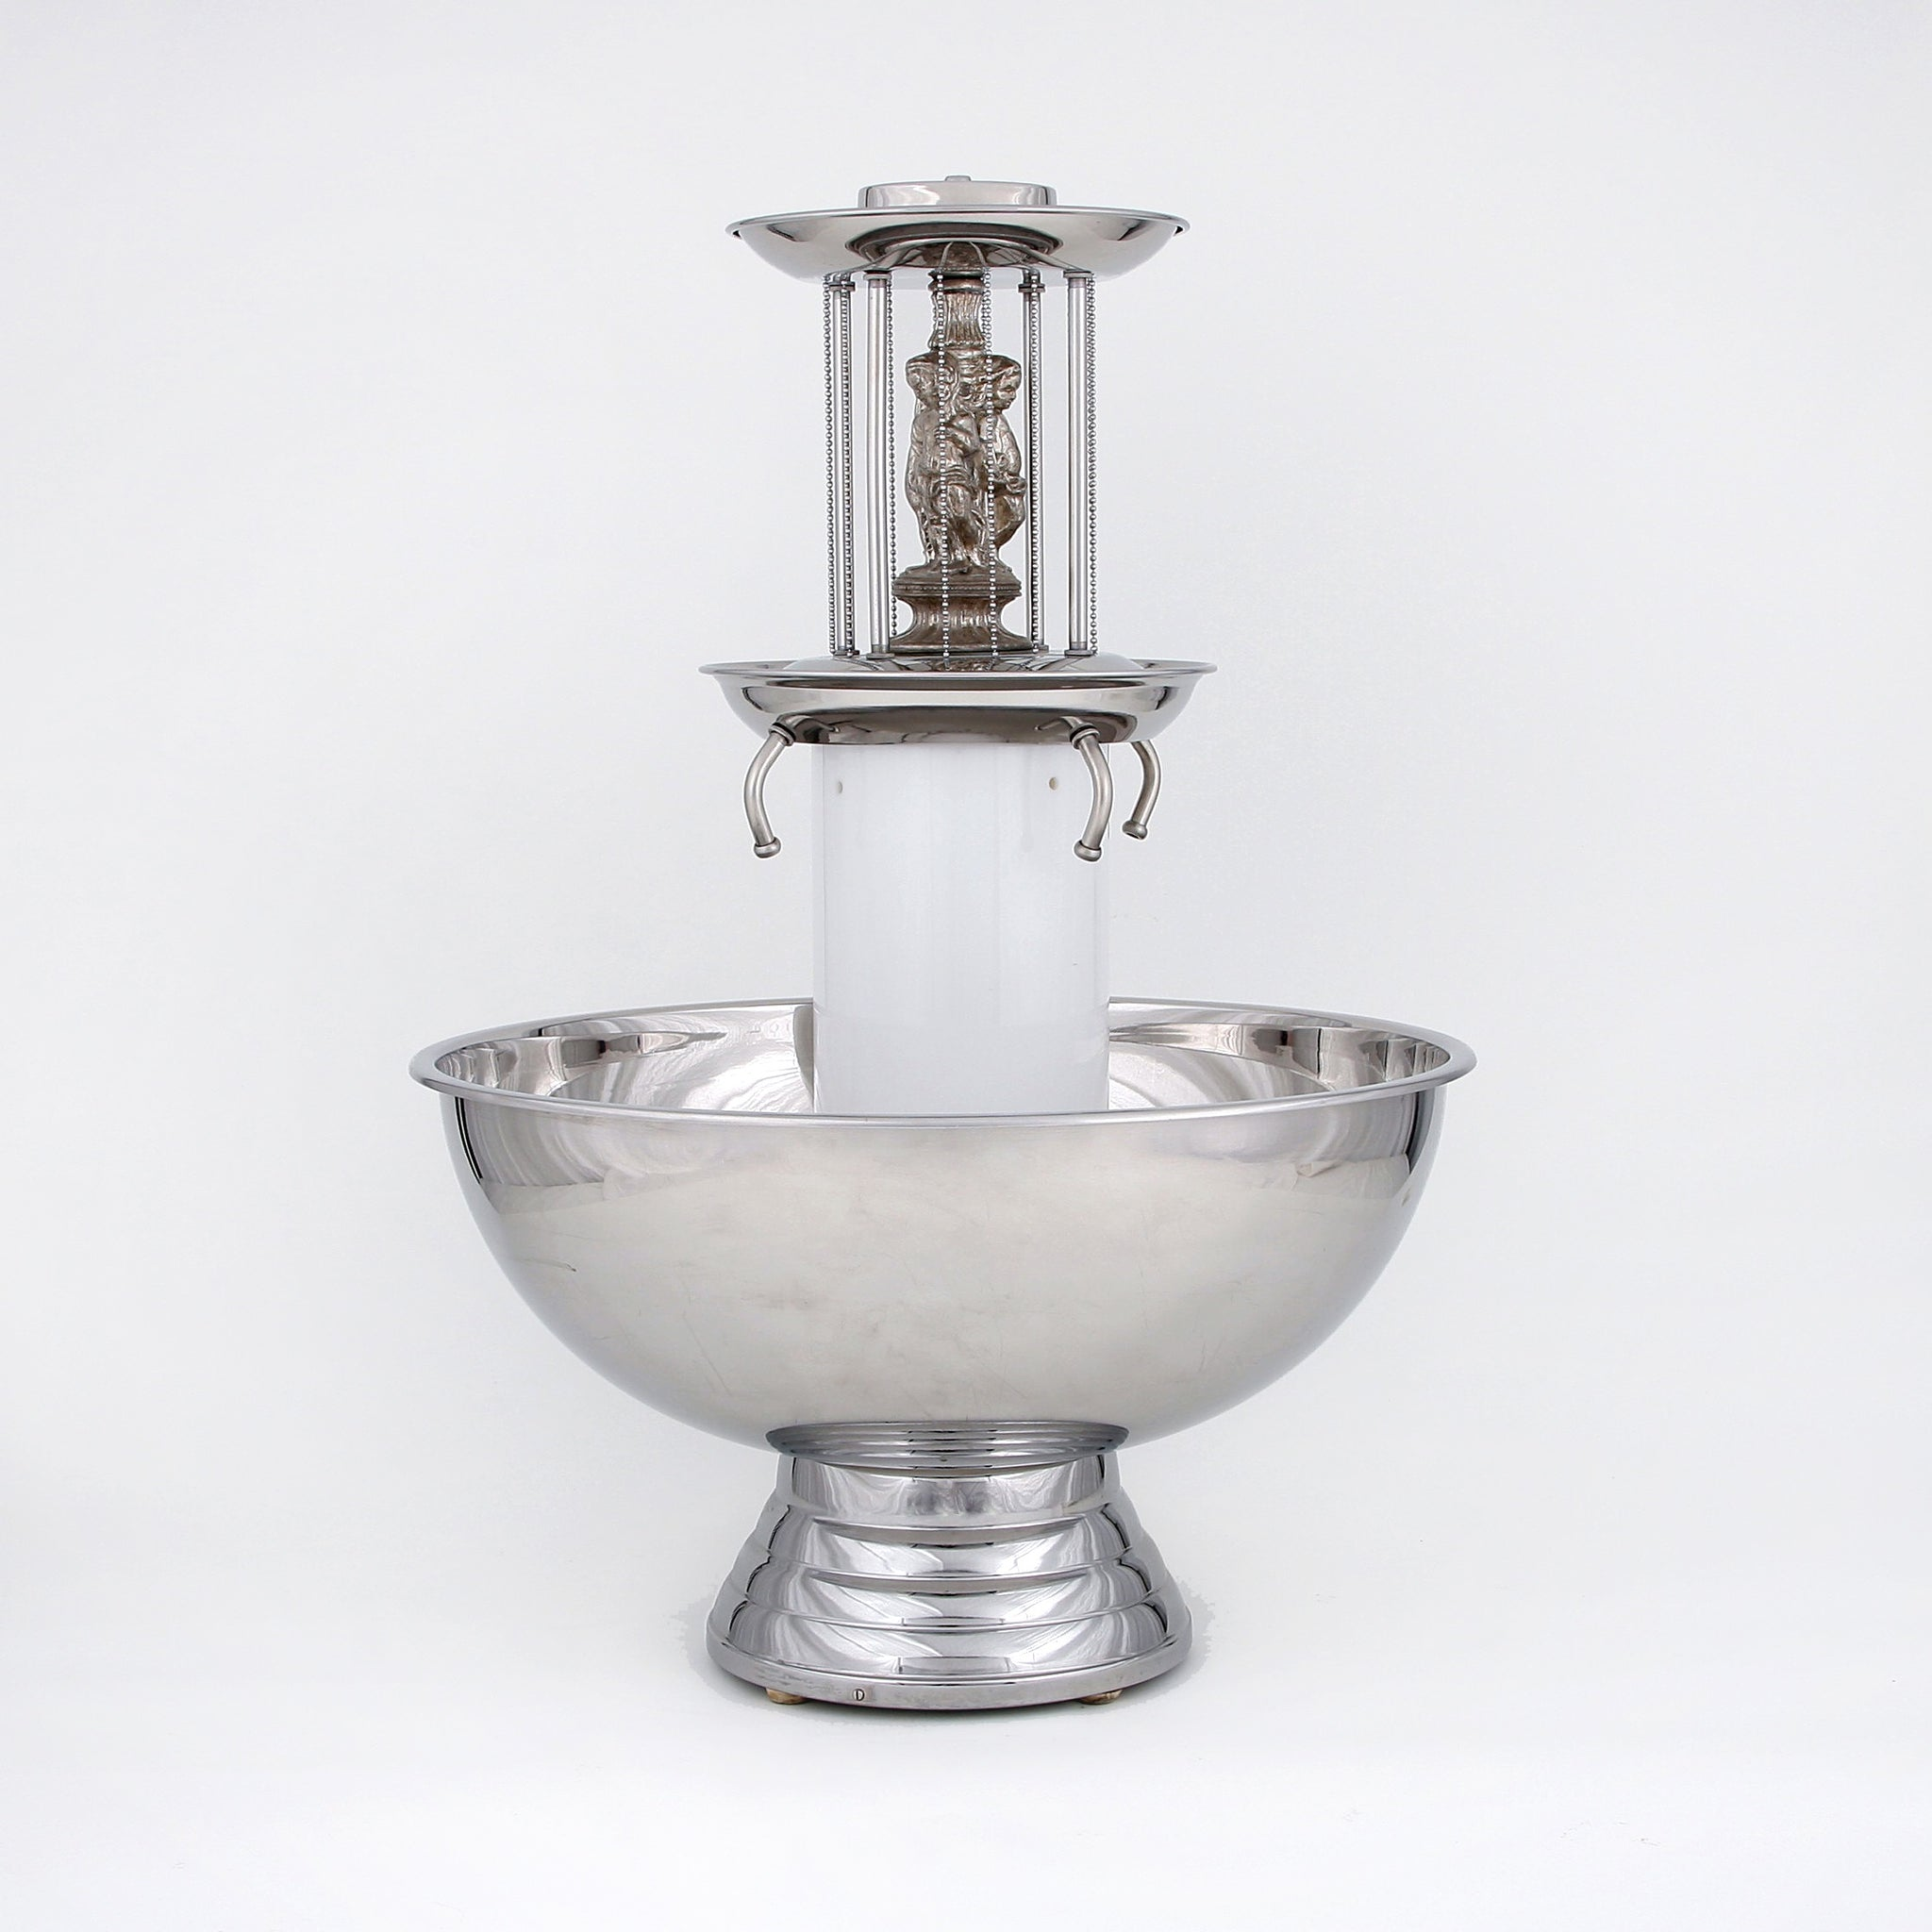 23 Litre Silver Fountain with Cherubs (rental price)